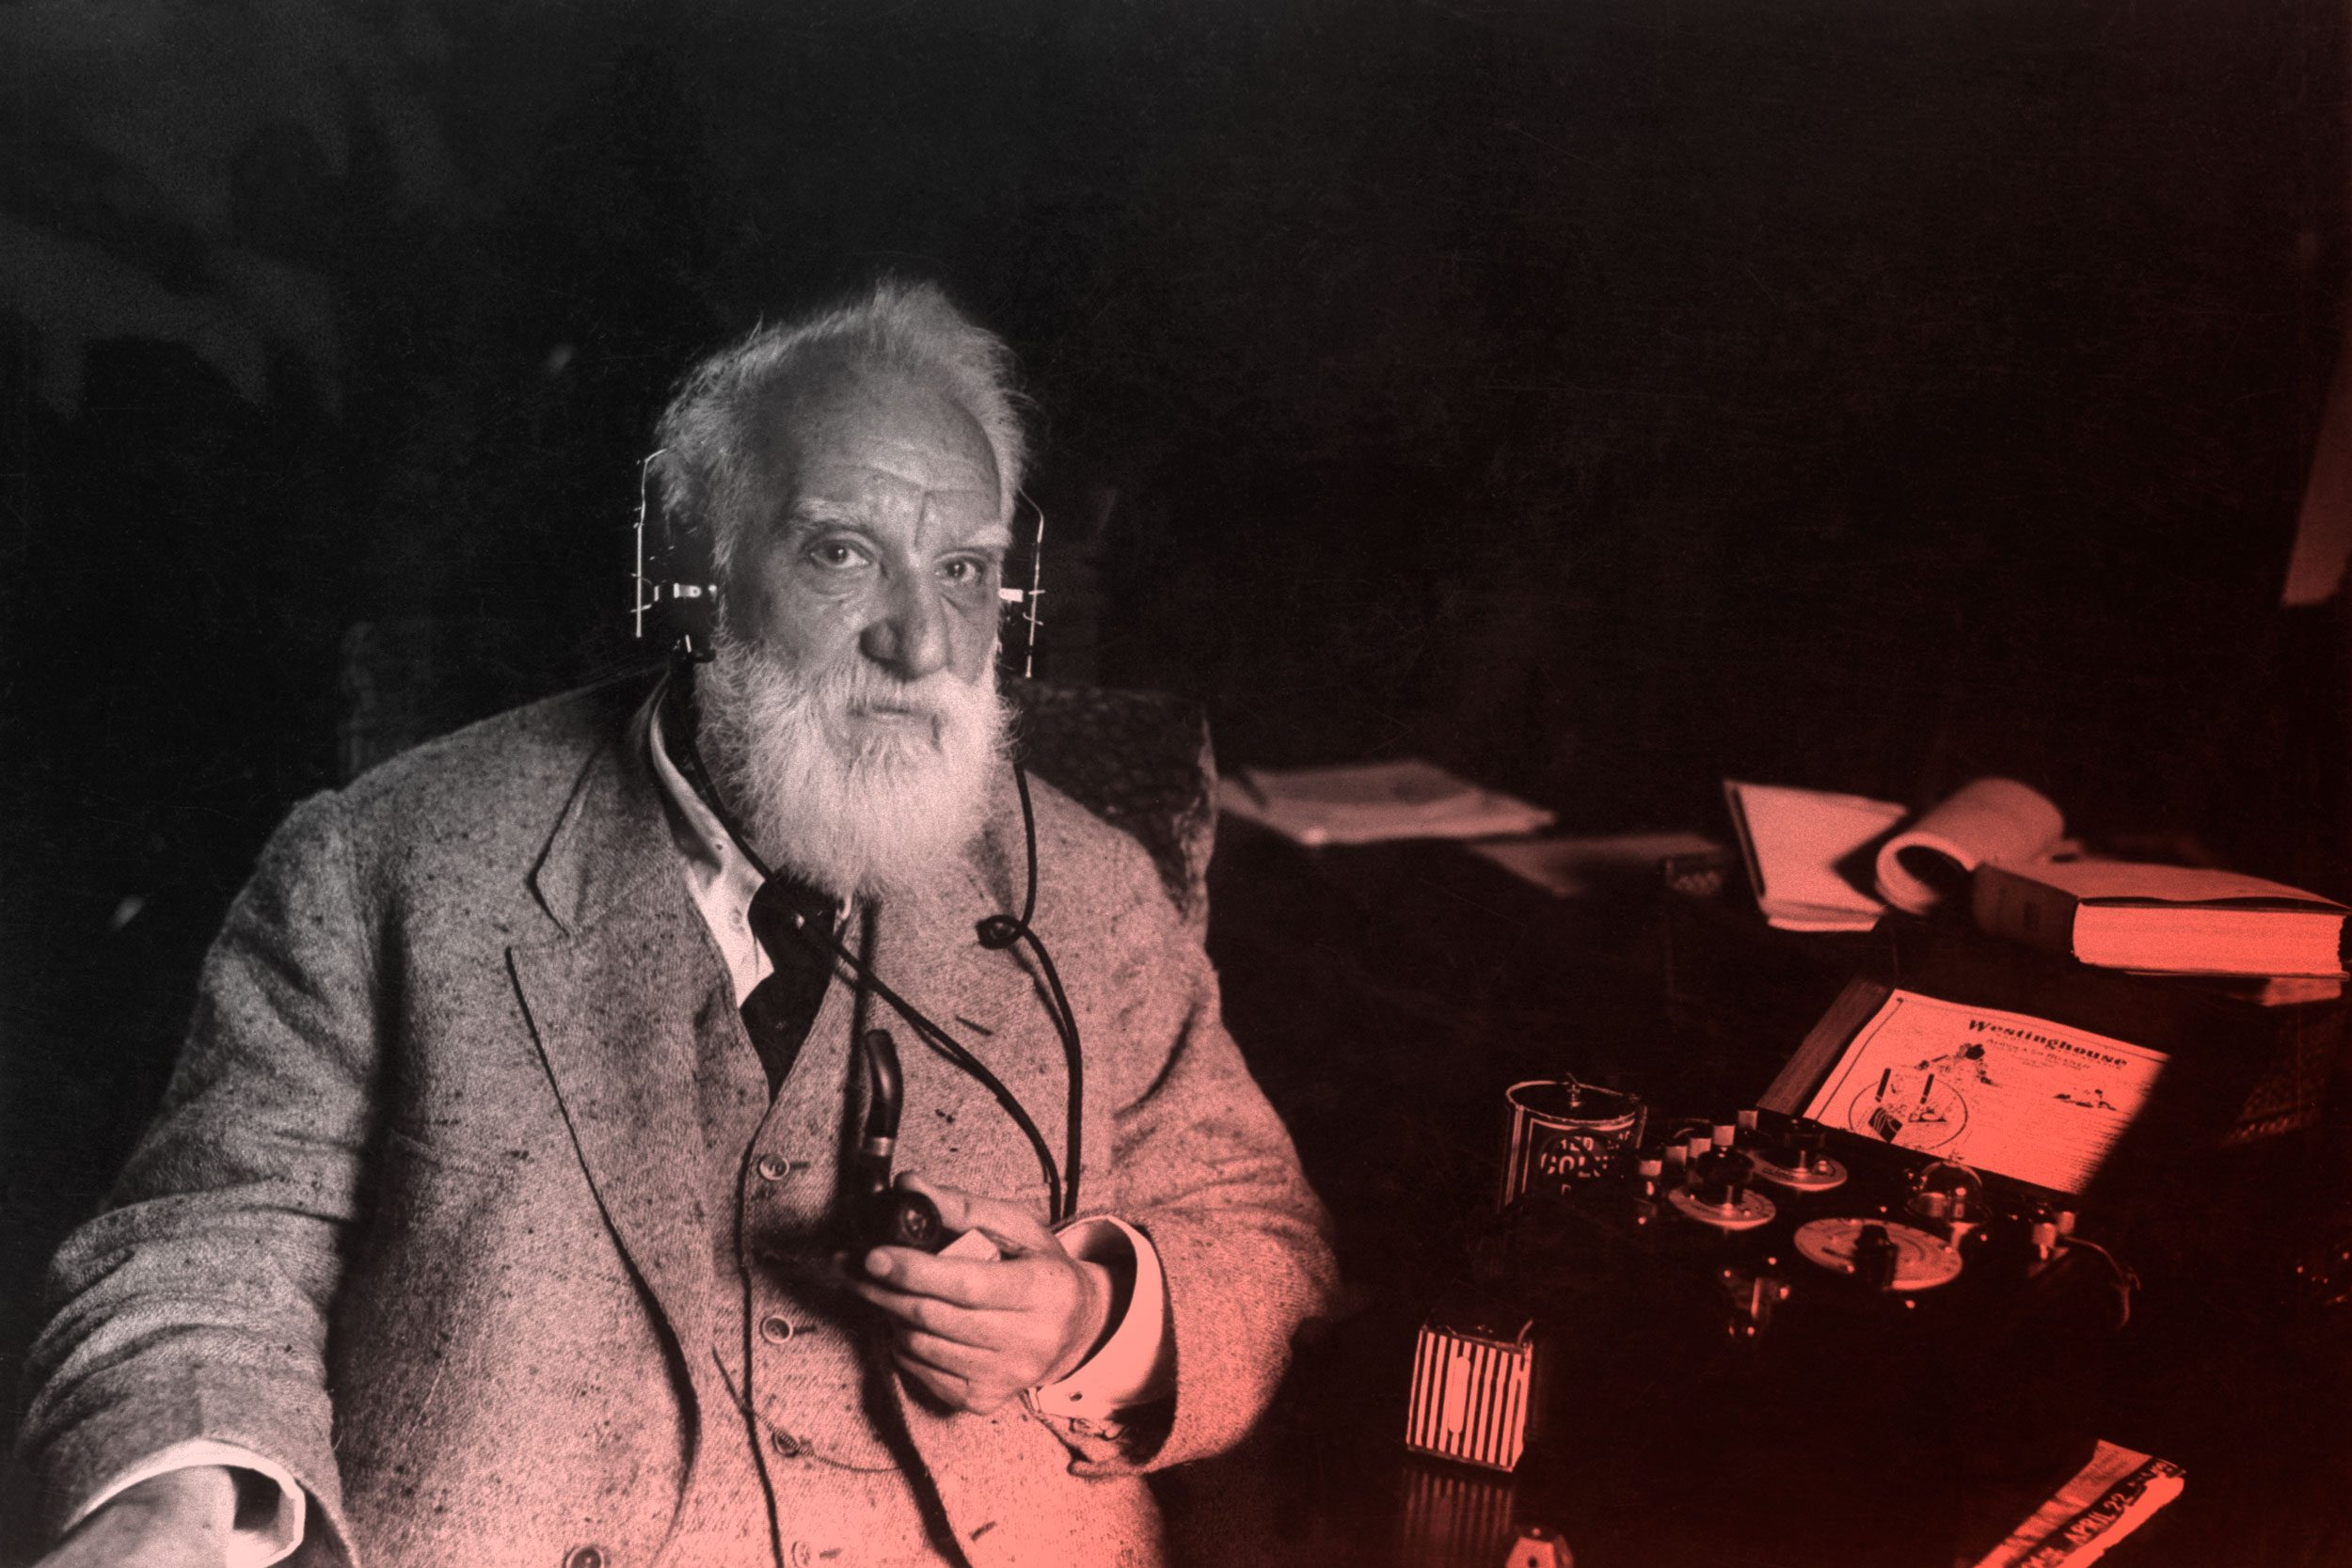 alexander graham bell sitting next to one of his inventions